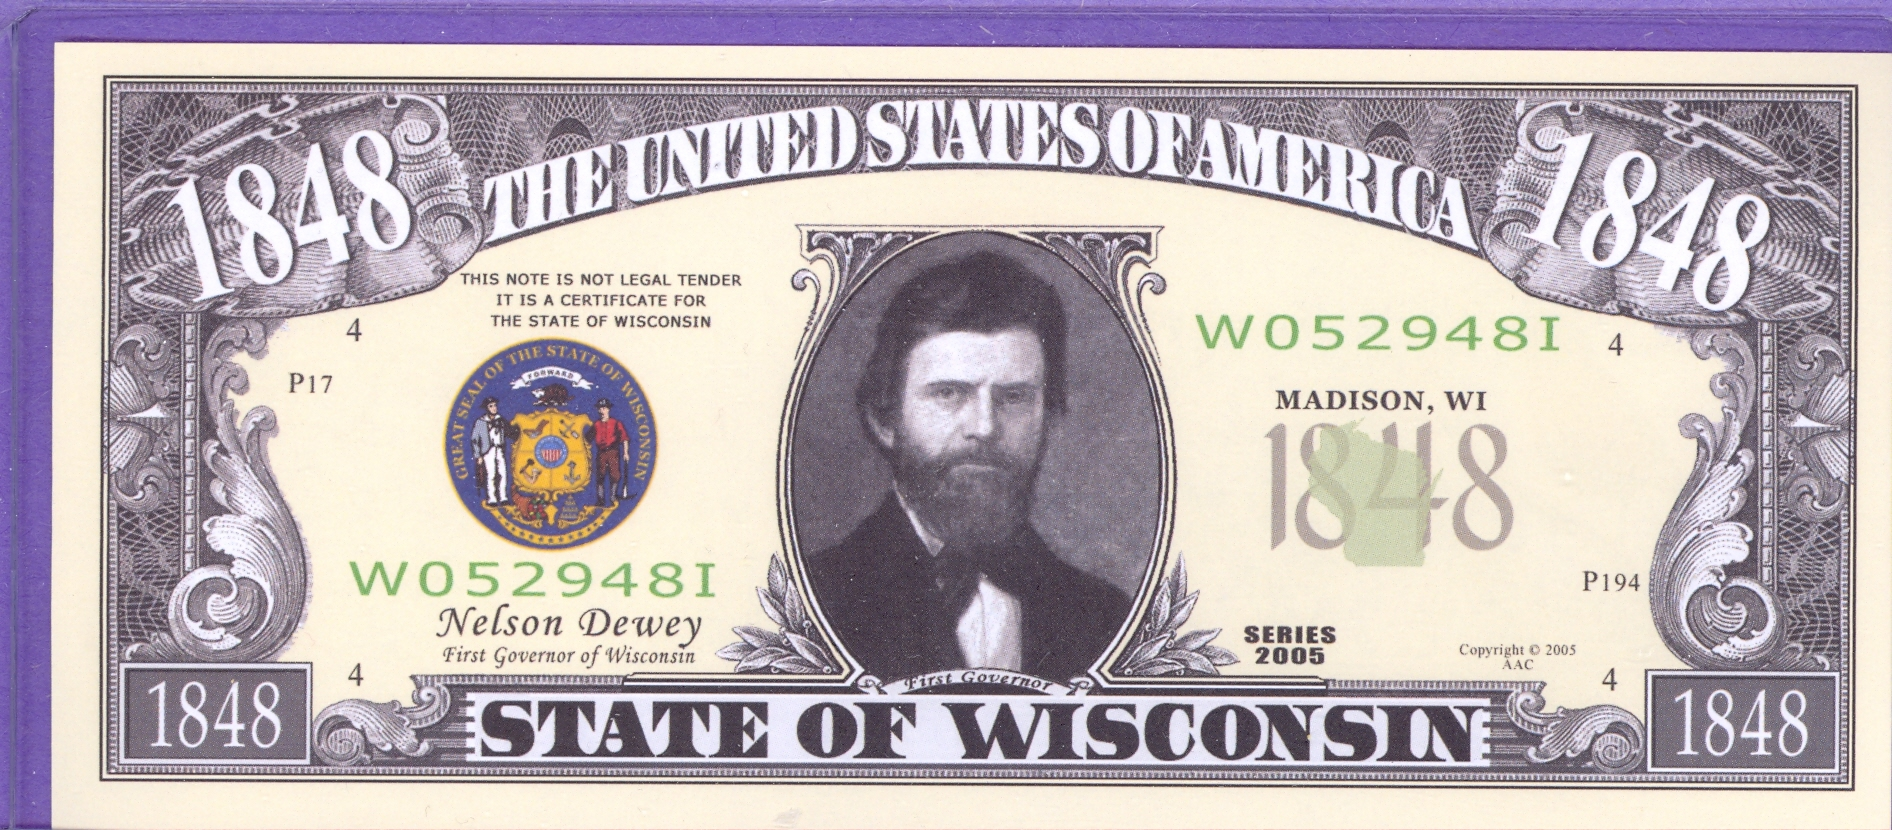 State of Wisconsin Novelty or Fantasy Note